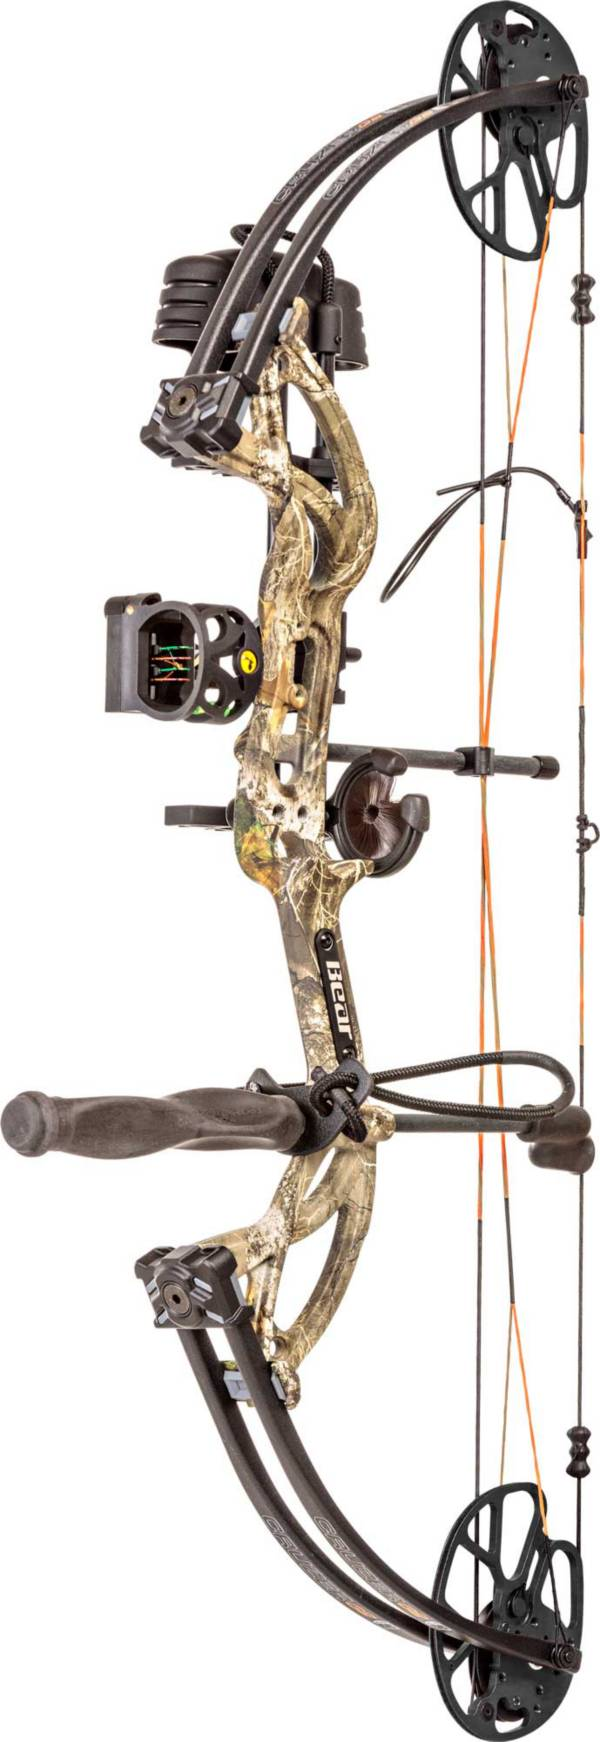 Bear Archery Cruzer G2 RTH Compound Bow Package product image